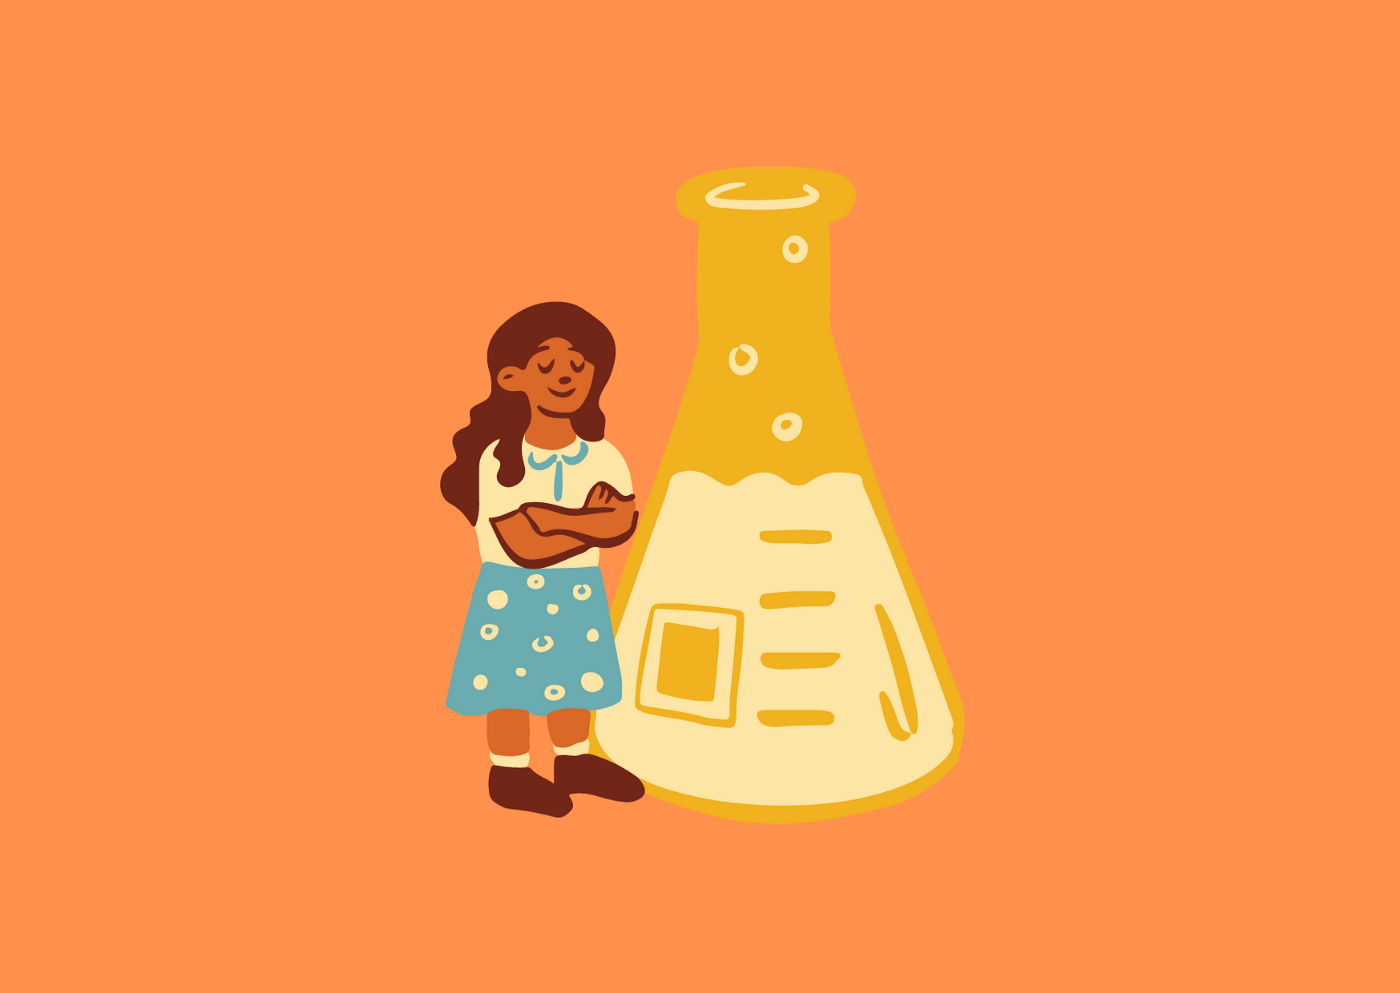 A person of color is standing beside a large erlenmeyer flask. They are content and happy.